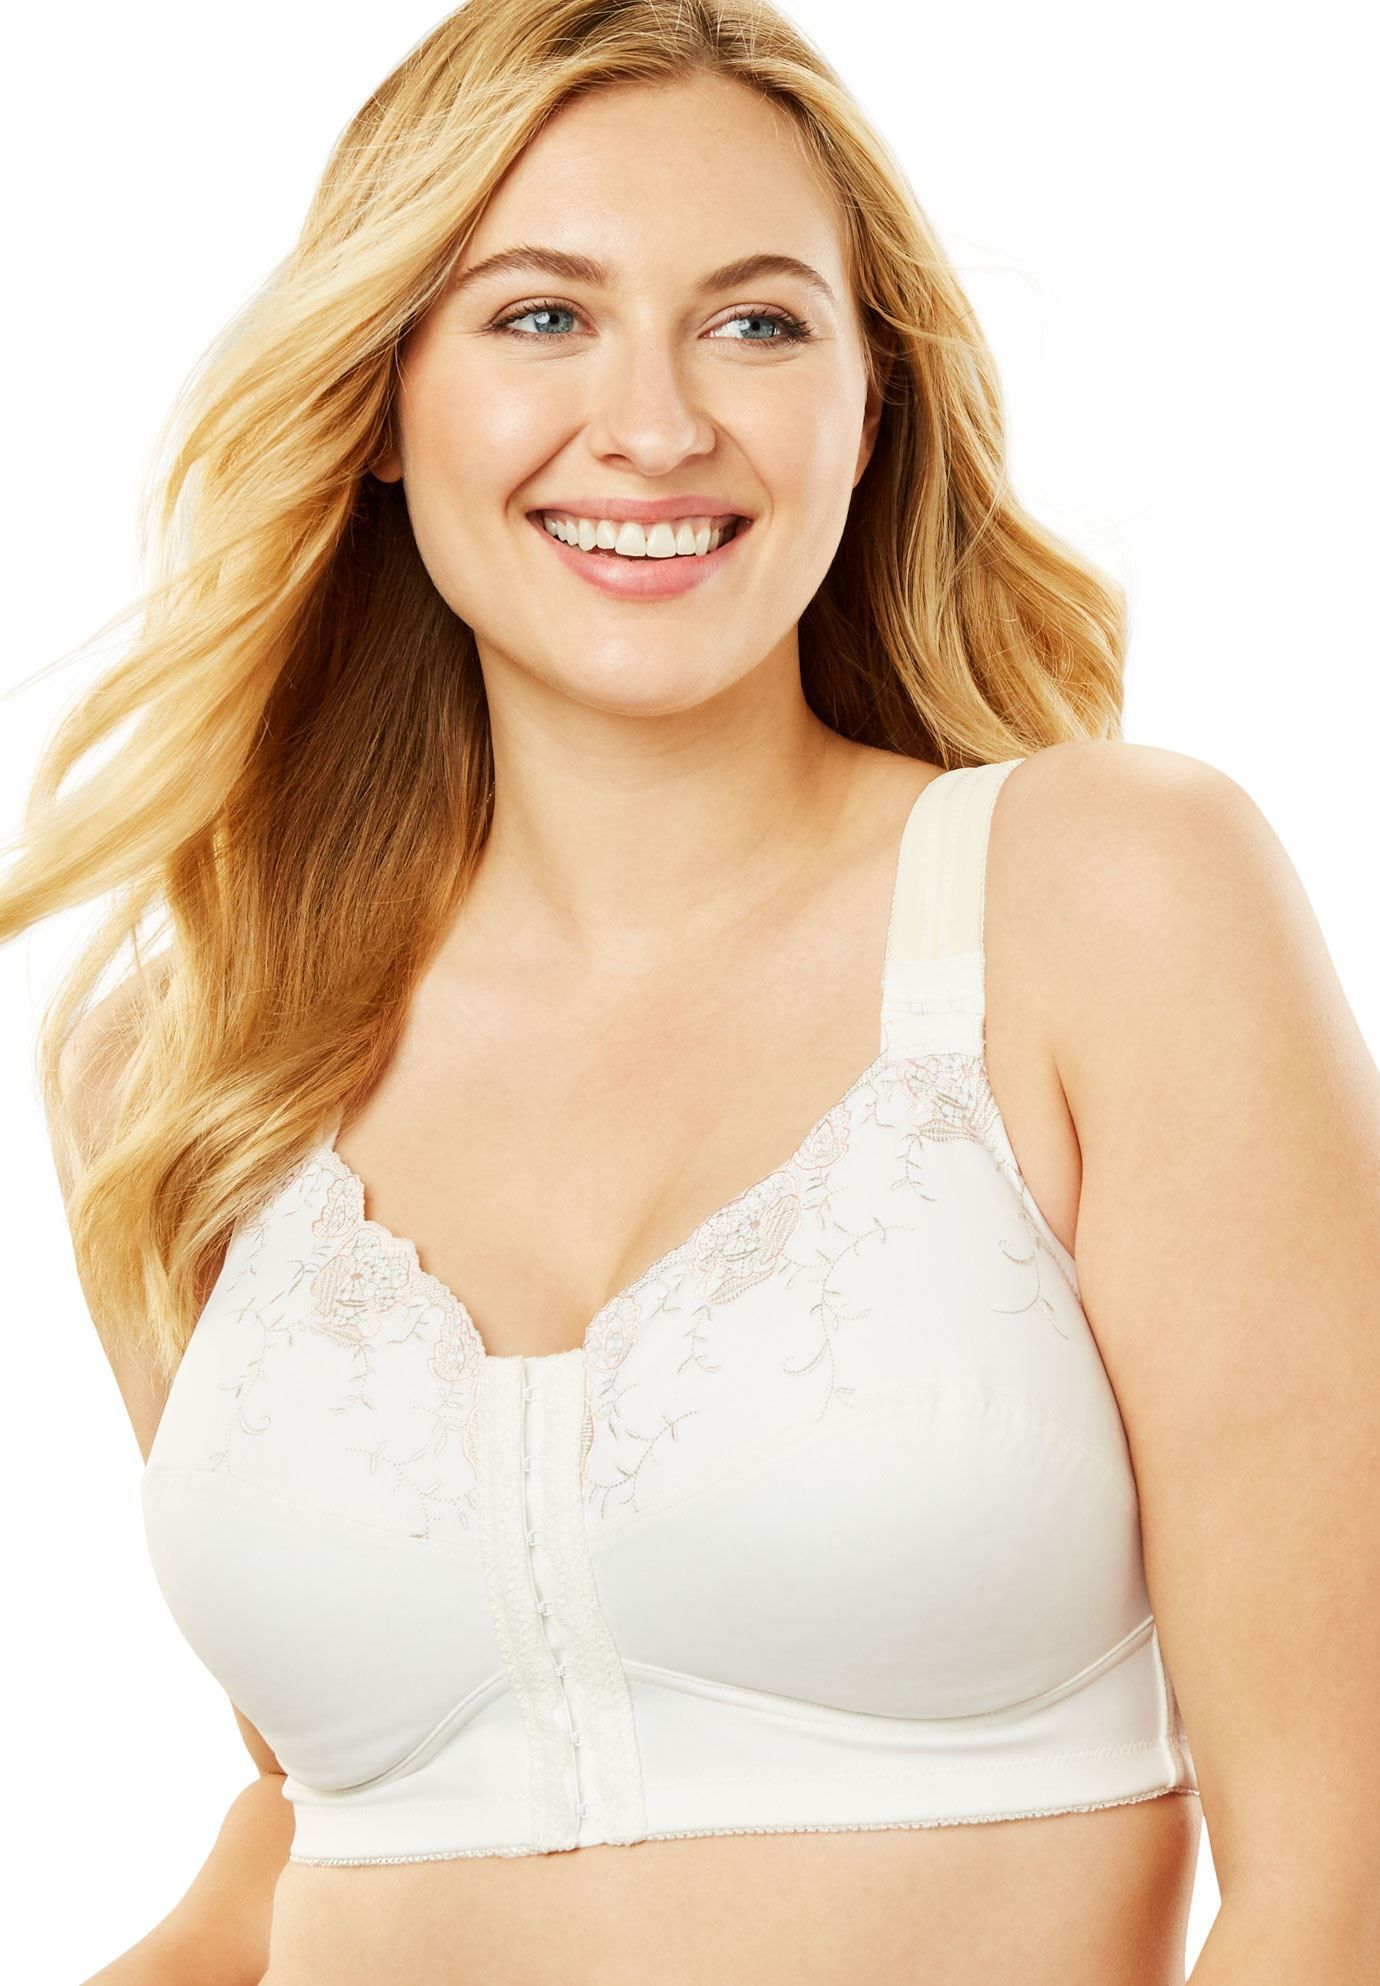 aaa2b17cd9 Embroidered Microfiber Posture Bra by Comfort Choice - Women s Plus Size  Clothing